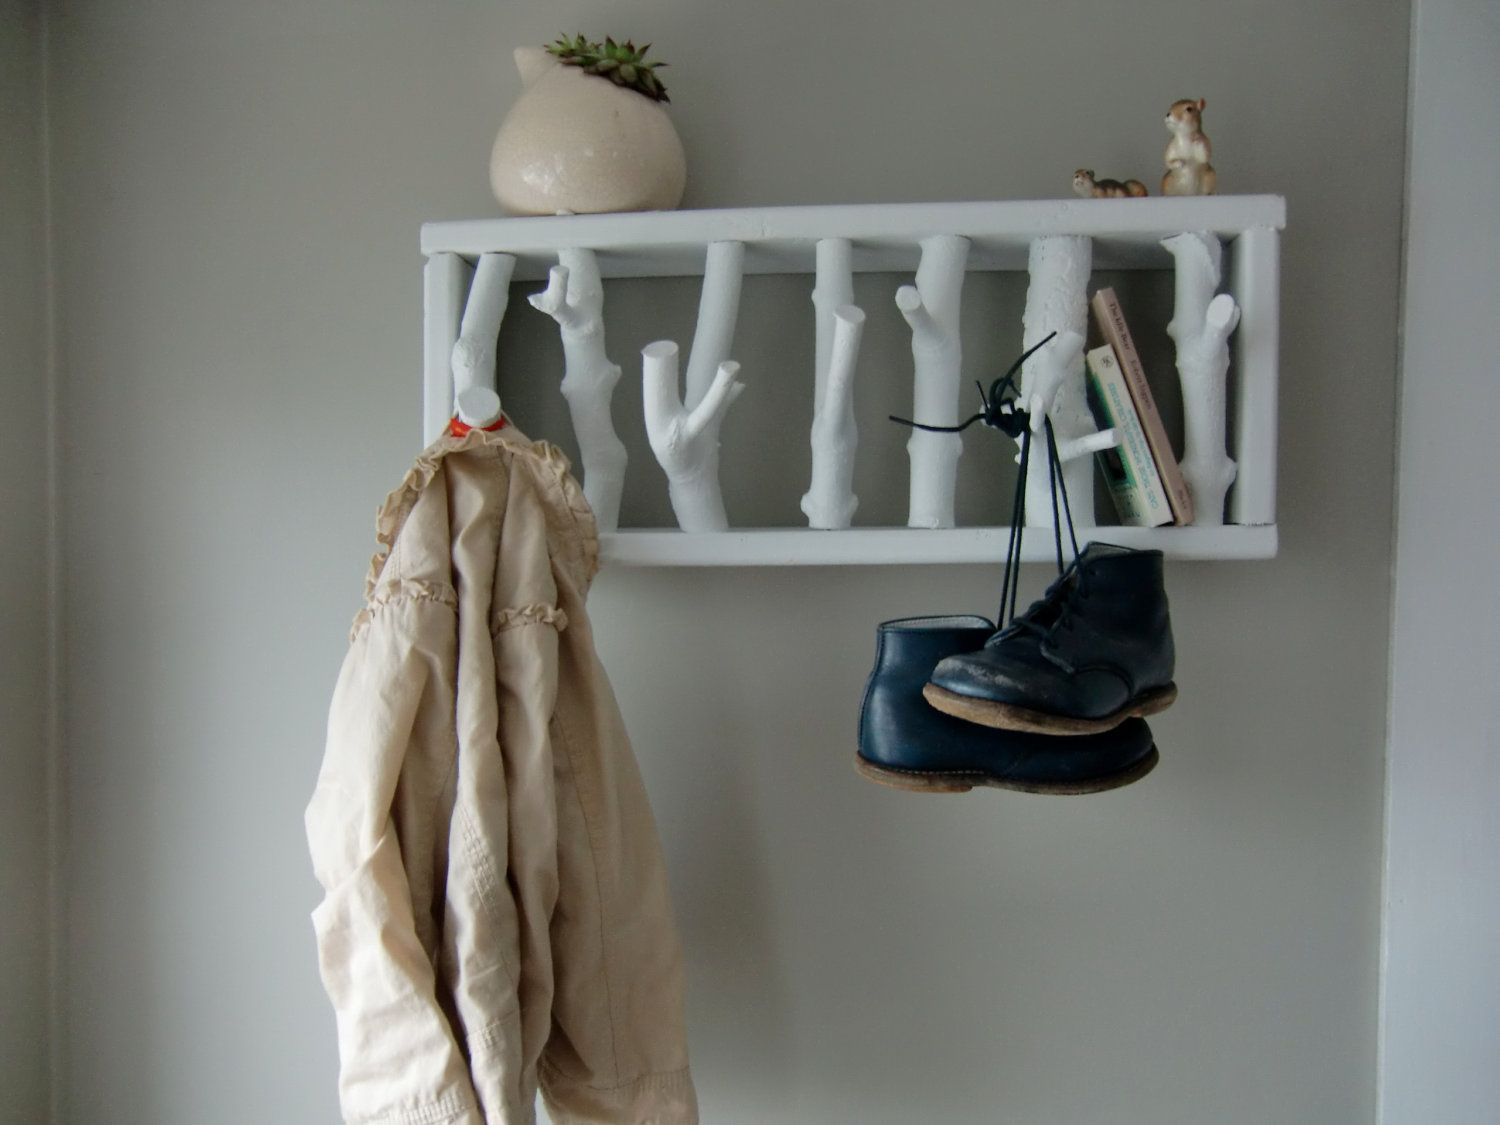 Creative Wall Coat Hook - Stylish Rustic White Wooden Hooks With The Treetop